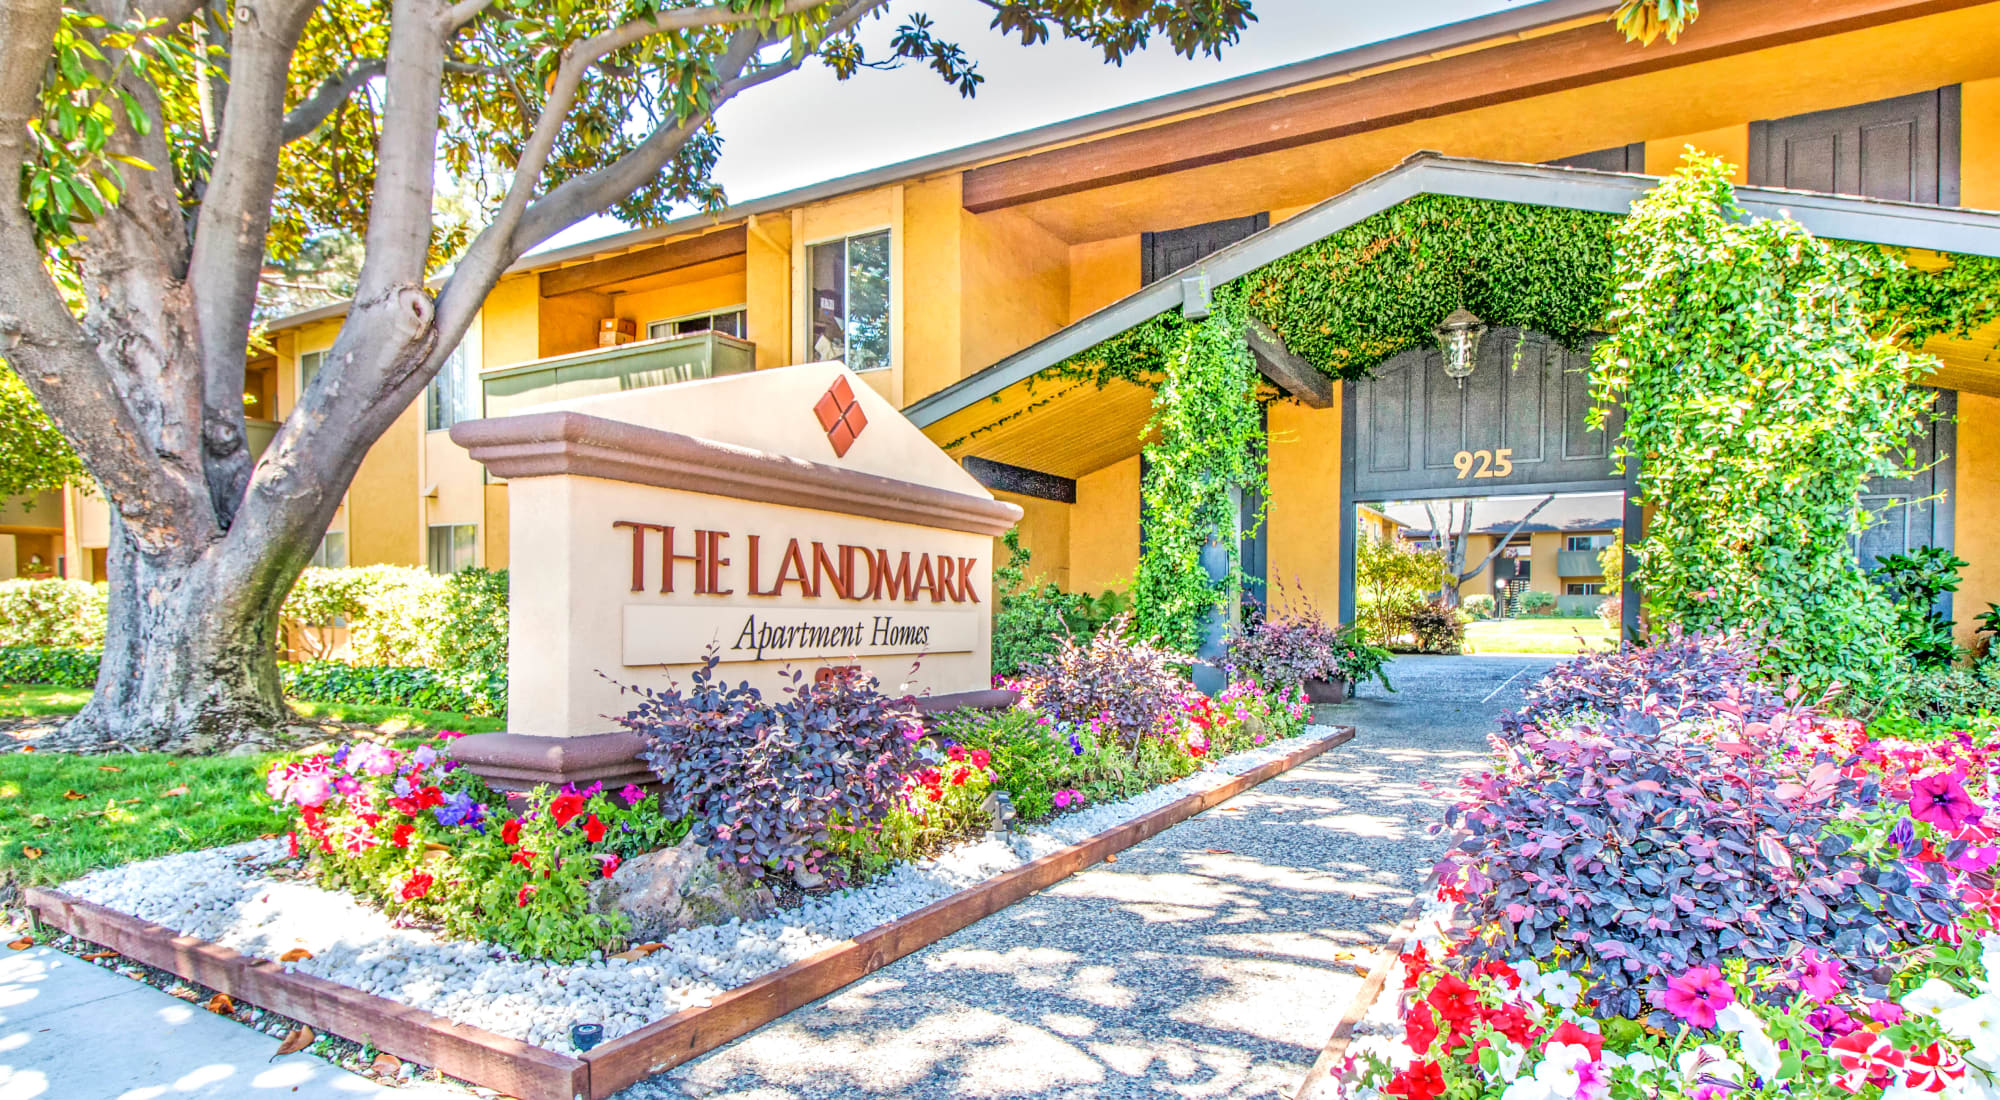 Map and directions to The Landmark Apartment Homes in Sunnyvale, California